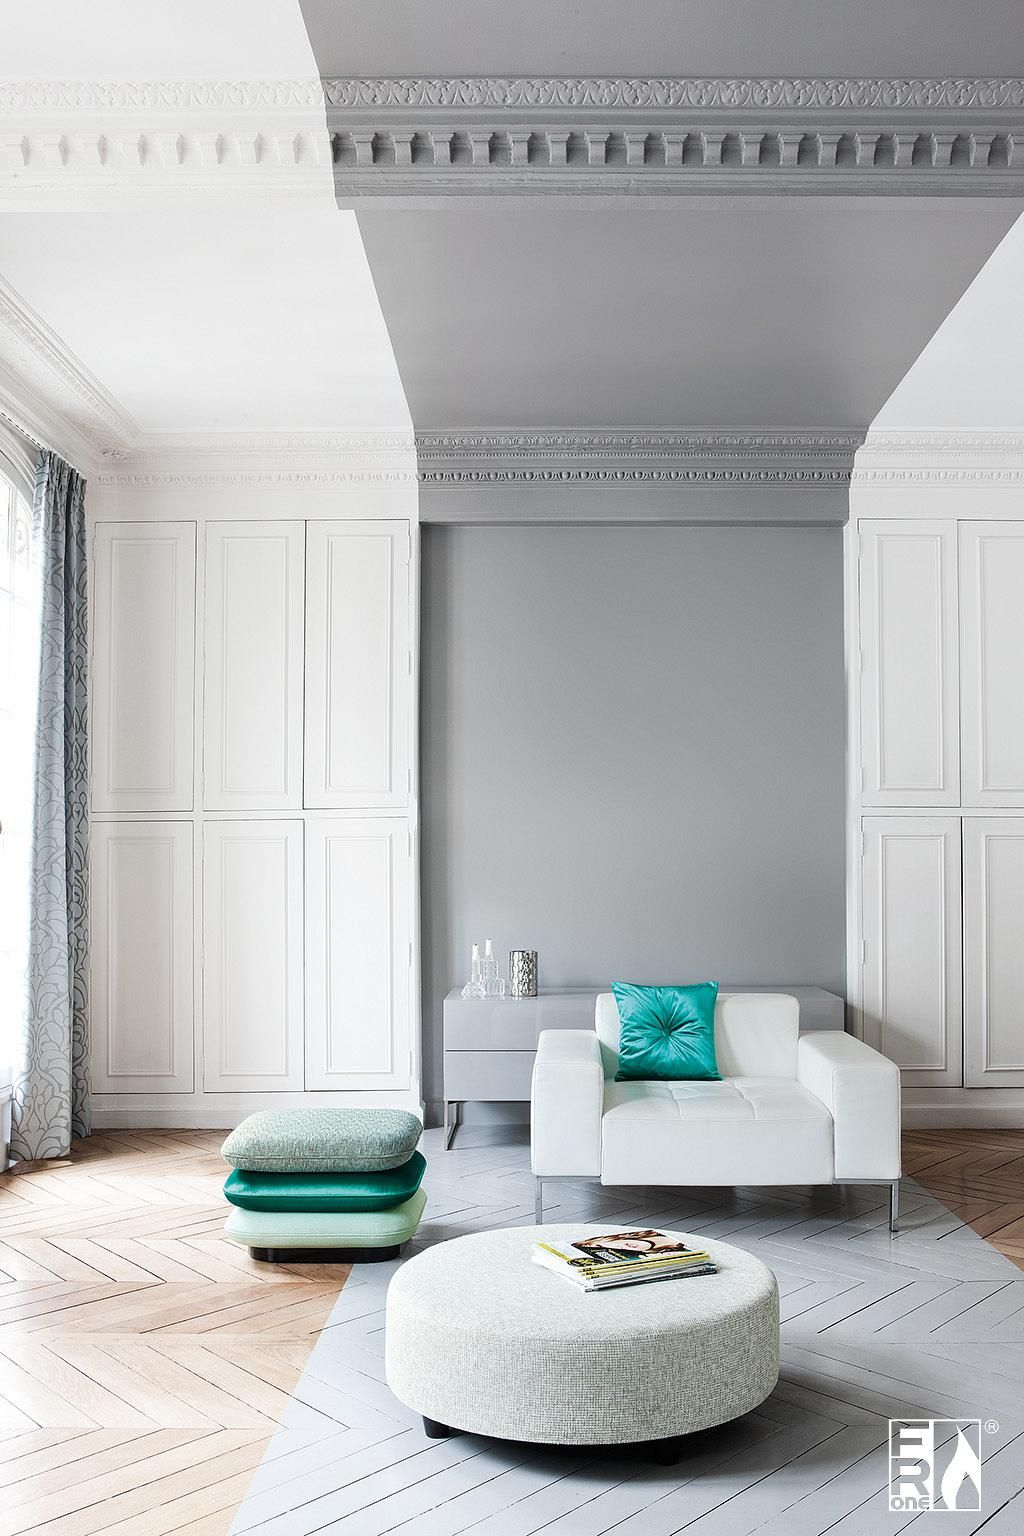 Residential Interior Project Has Modern Yet Vintage Take: Residential Interior Design, White